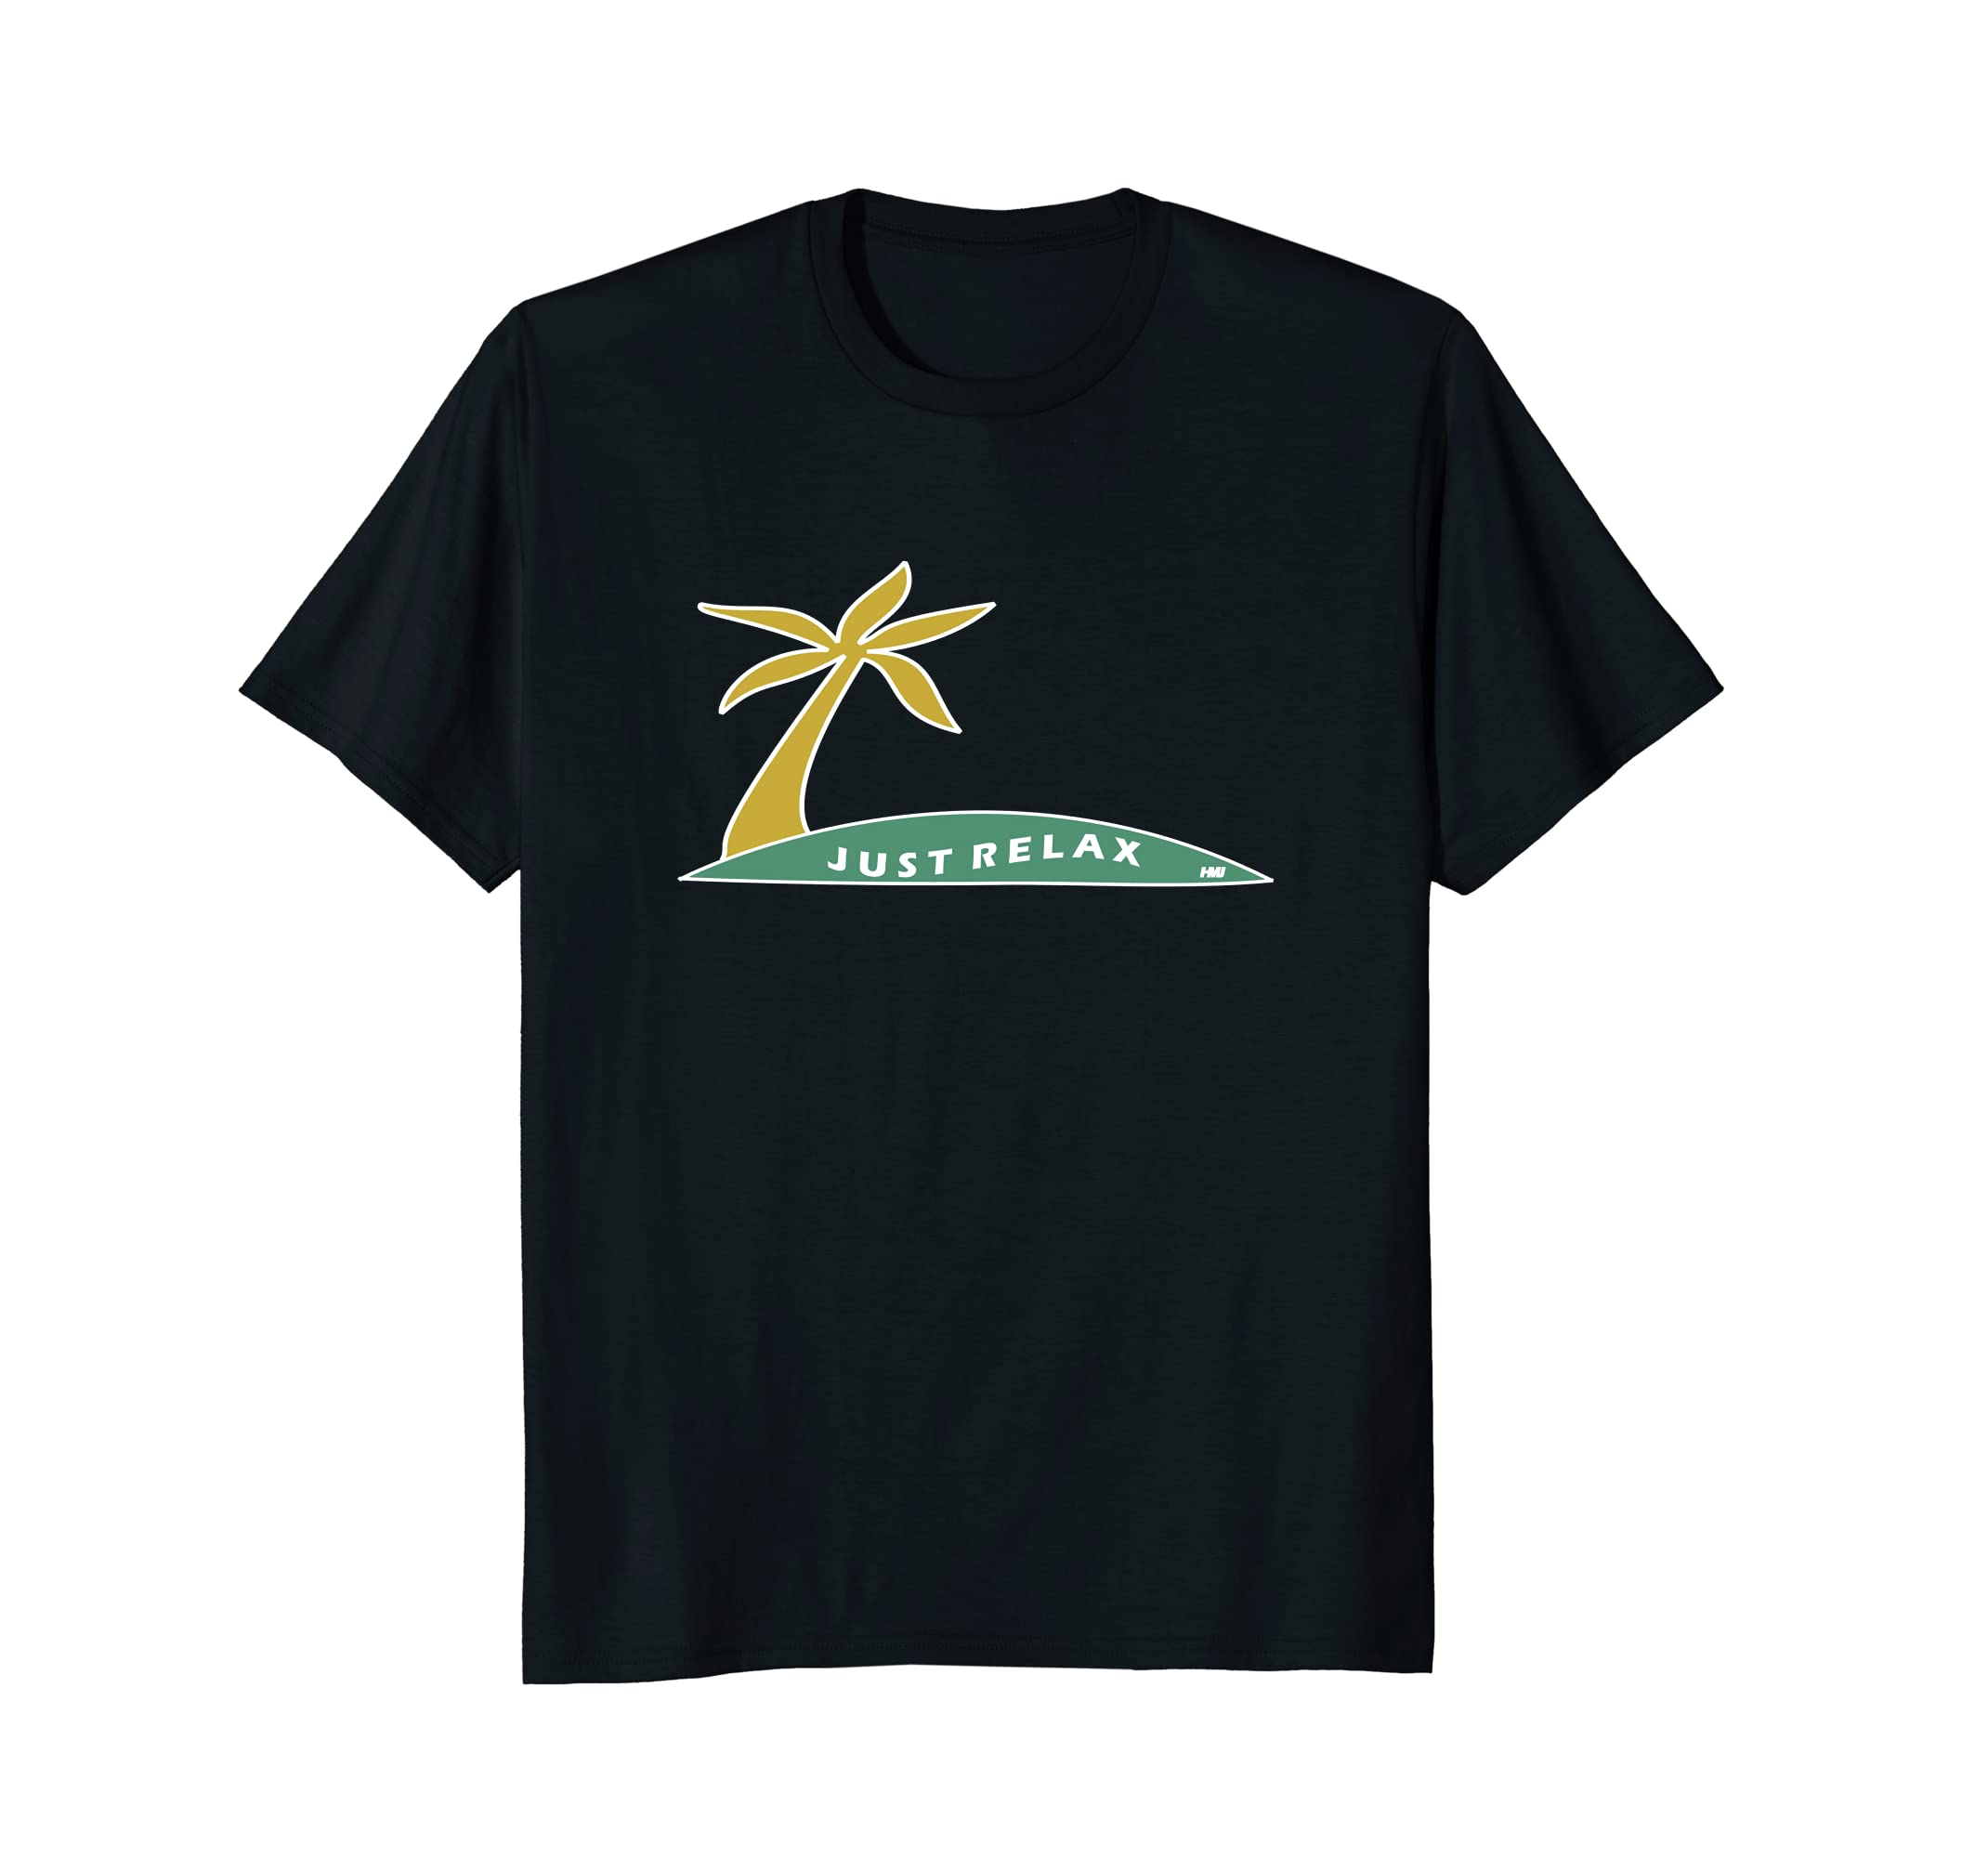 82f86d90488 JUST RELAX Inspiring Relaxing Summer Vibes Graphic Tee Shirt-alottee gift